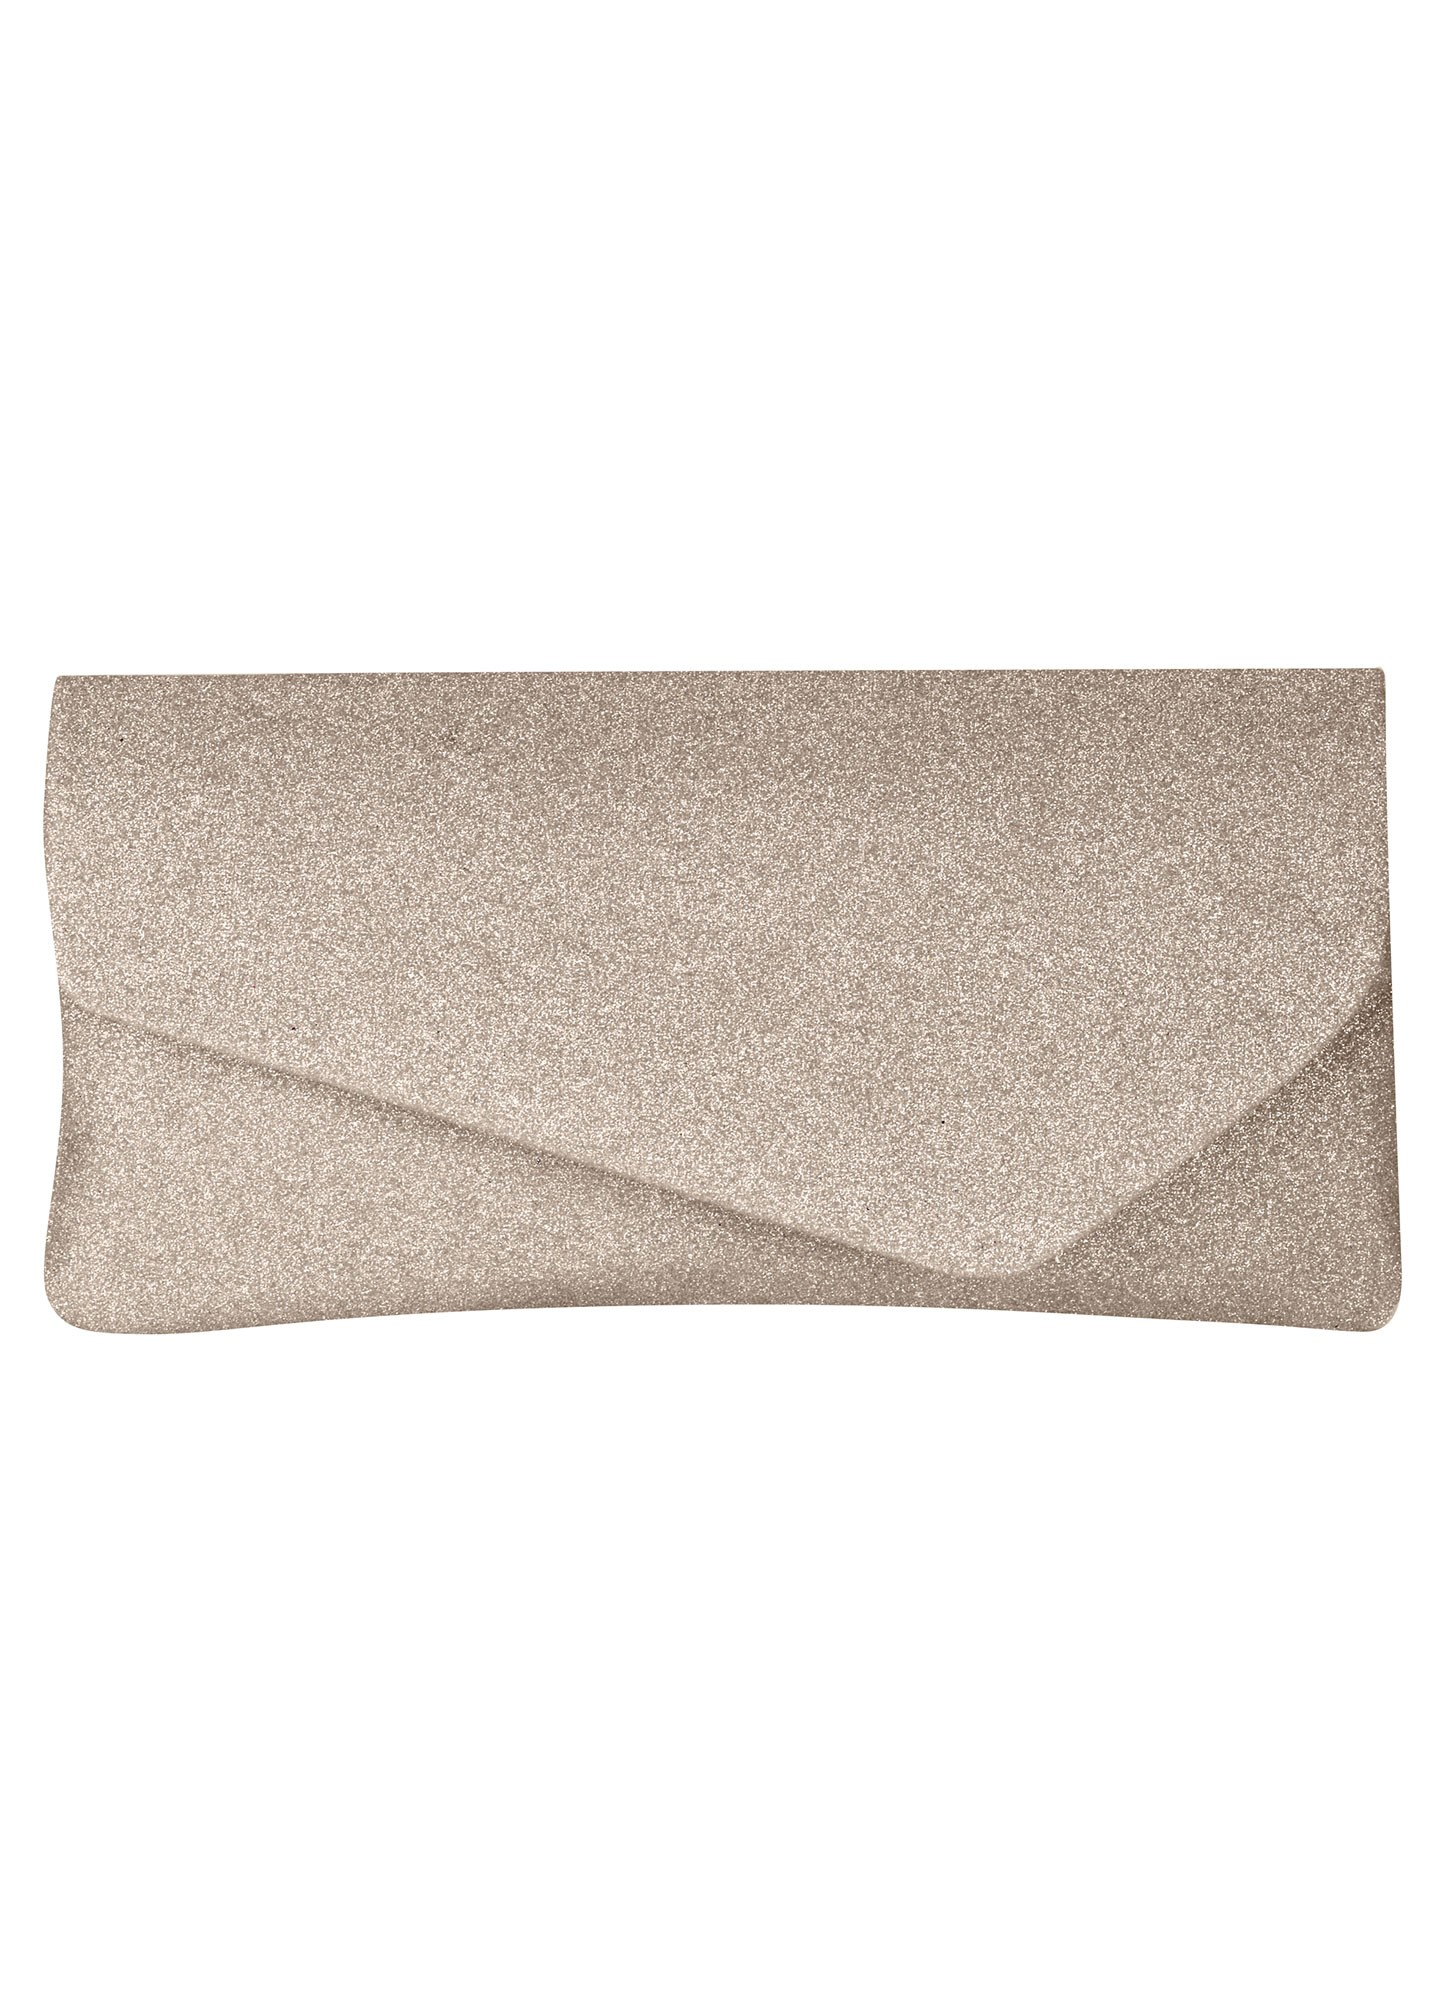 Marcy Champagne Glitter Clutch